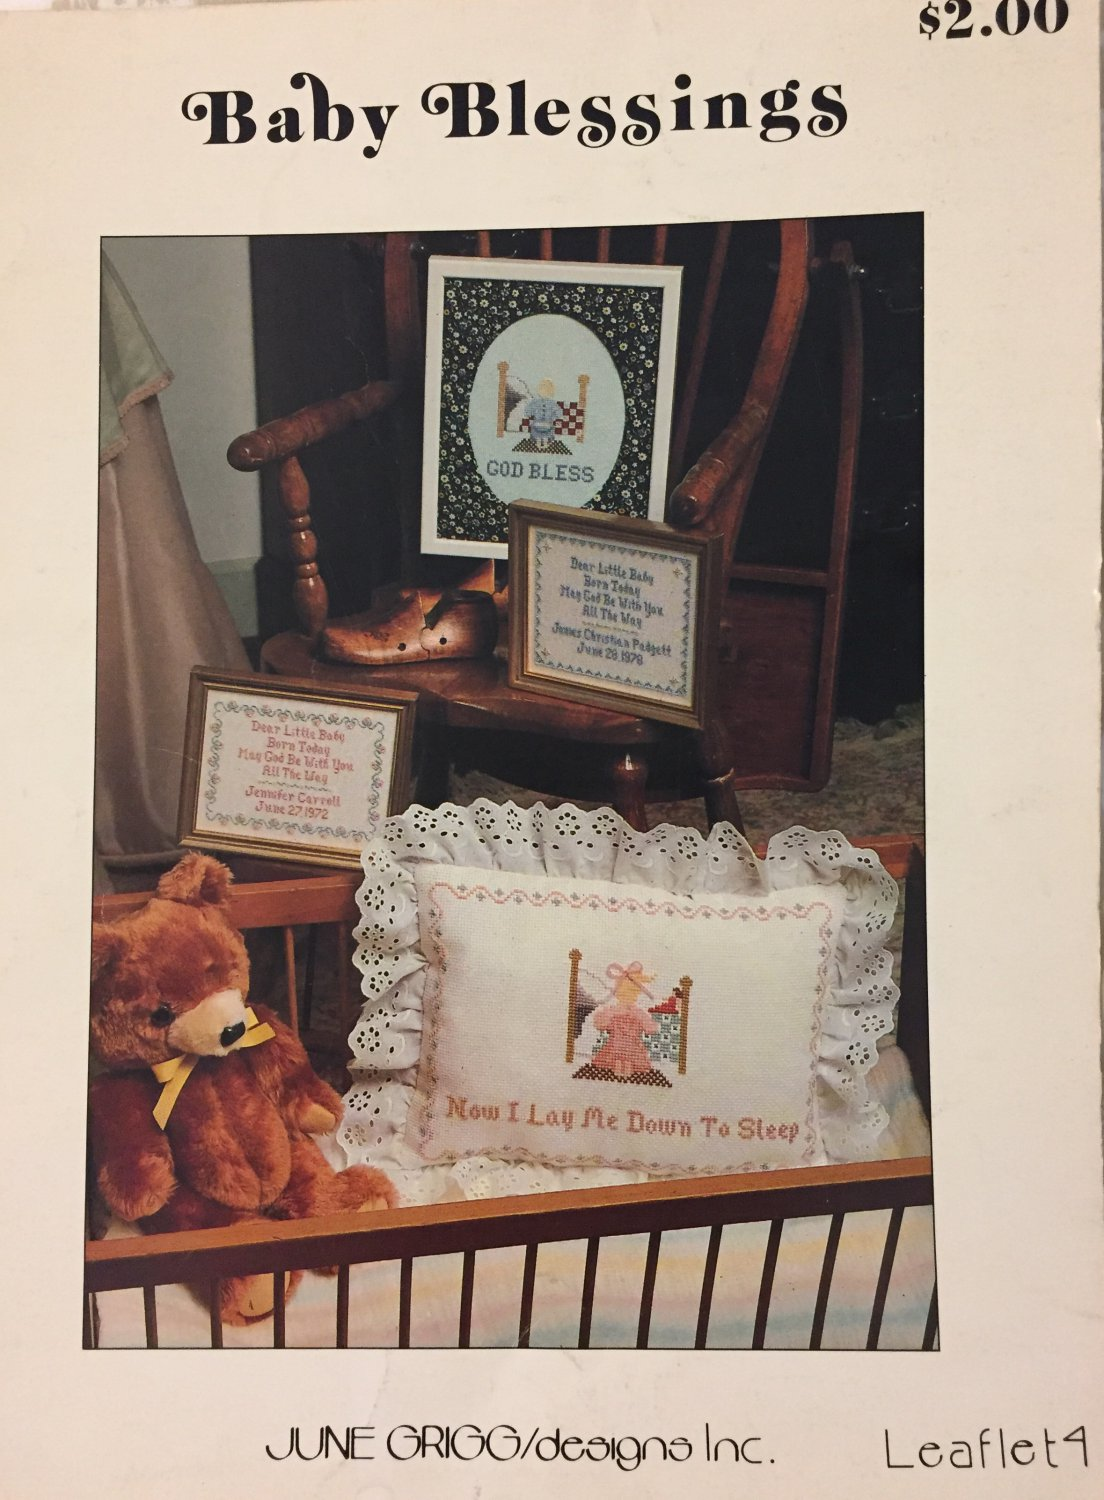 Baby Blessings Cross Stitch Pattern June Grigg designs Inc. Leaflet 4